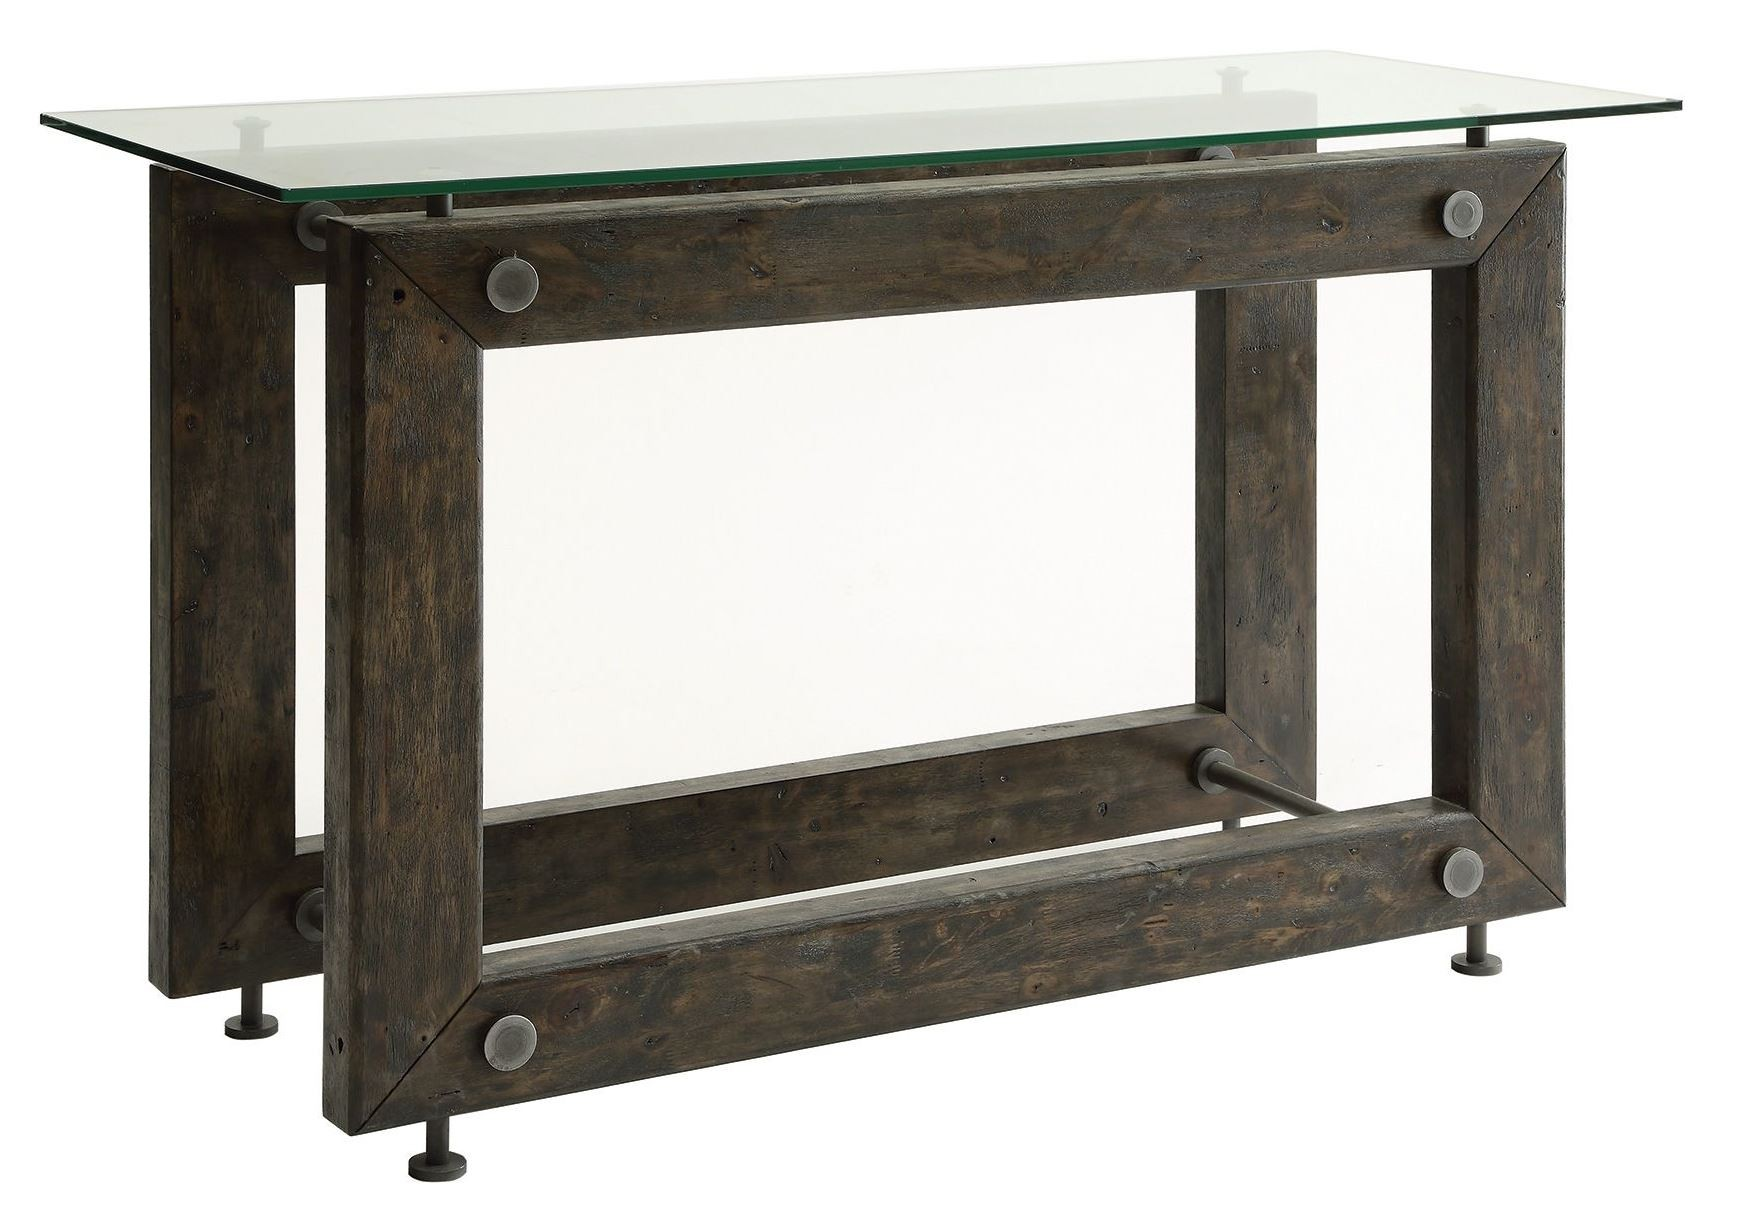 Tempered Glass Top Sofa Table From Coaster 704279